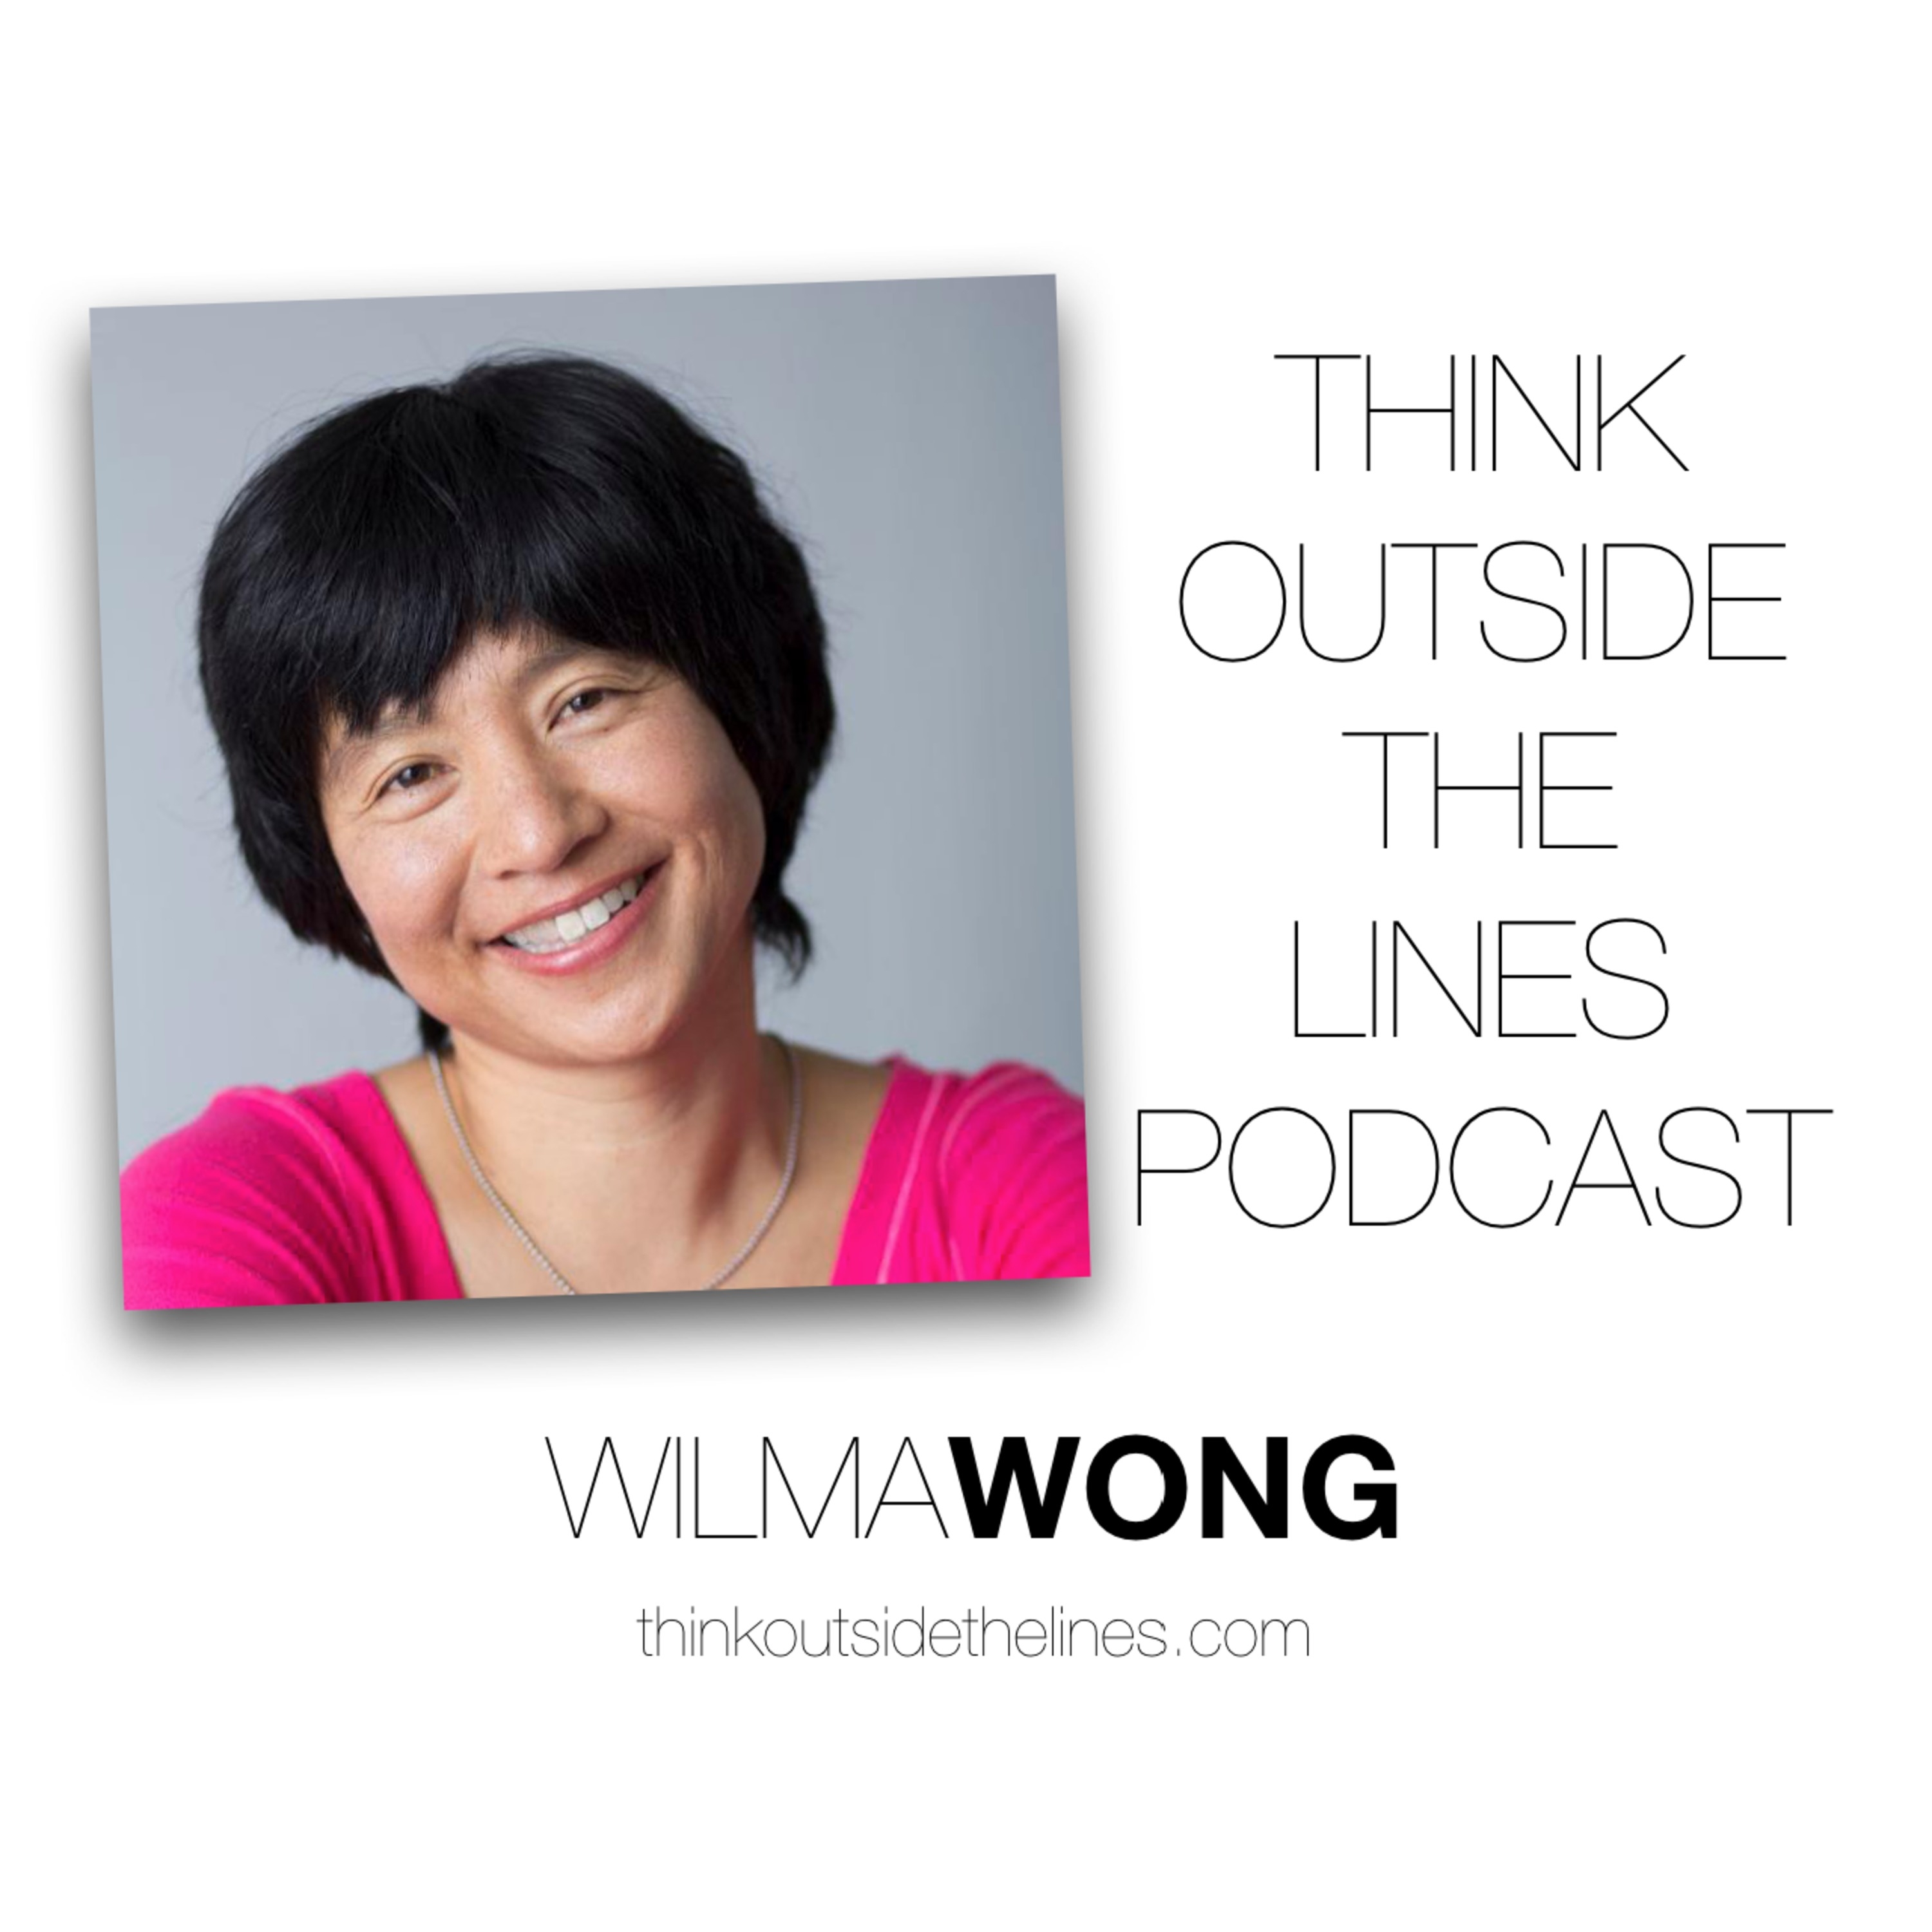 Wilma Wong - Cultivating A Healthy Mind, Body & Spirit